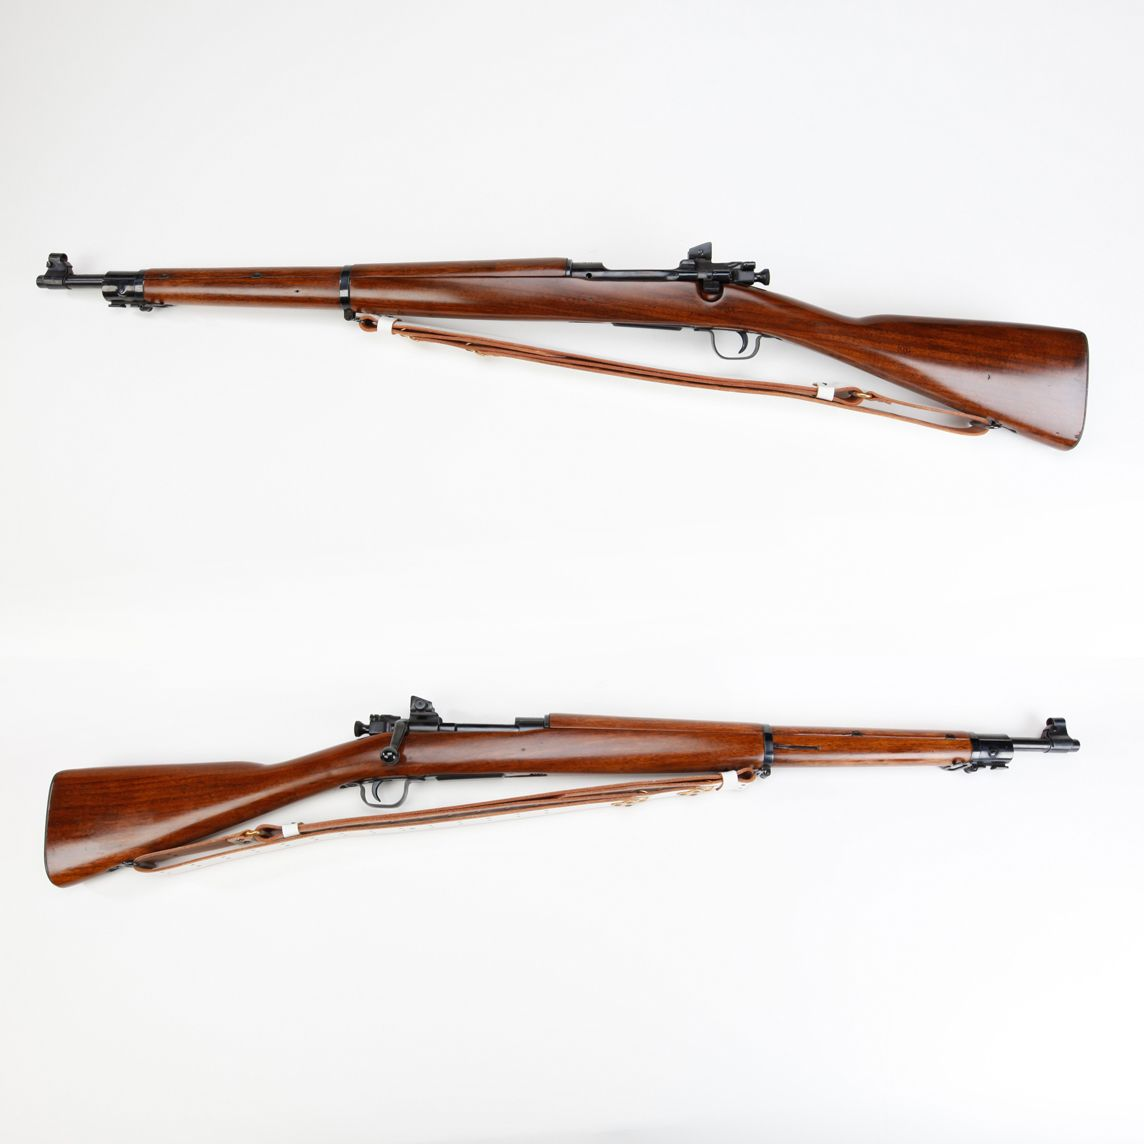 Teddy roosevelt guns to be displayed at nra national - Nra Parade Rifle Starting Off As A Remington Model 1903a3 Rifle During Wwii This